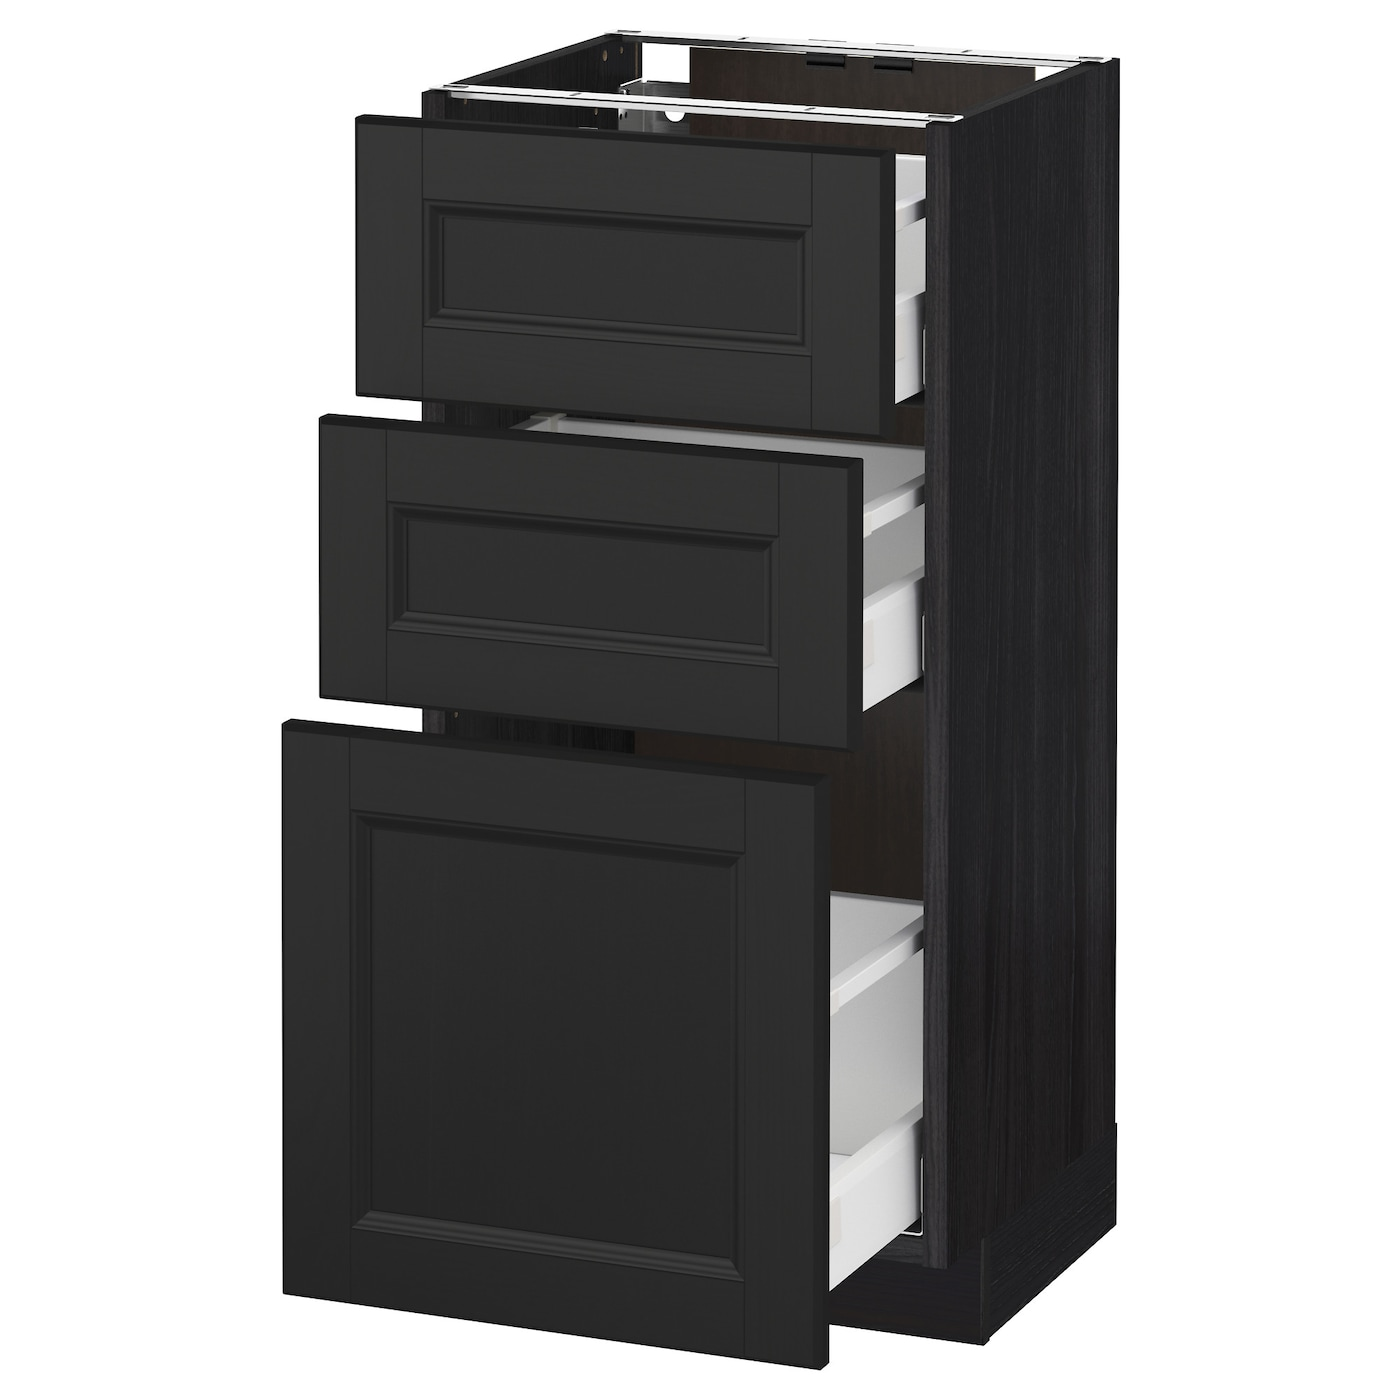 METOD/MAXIMERA Base Cabinet With 3 Drawers Black/laxarby Black-brown 40x37 Cm